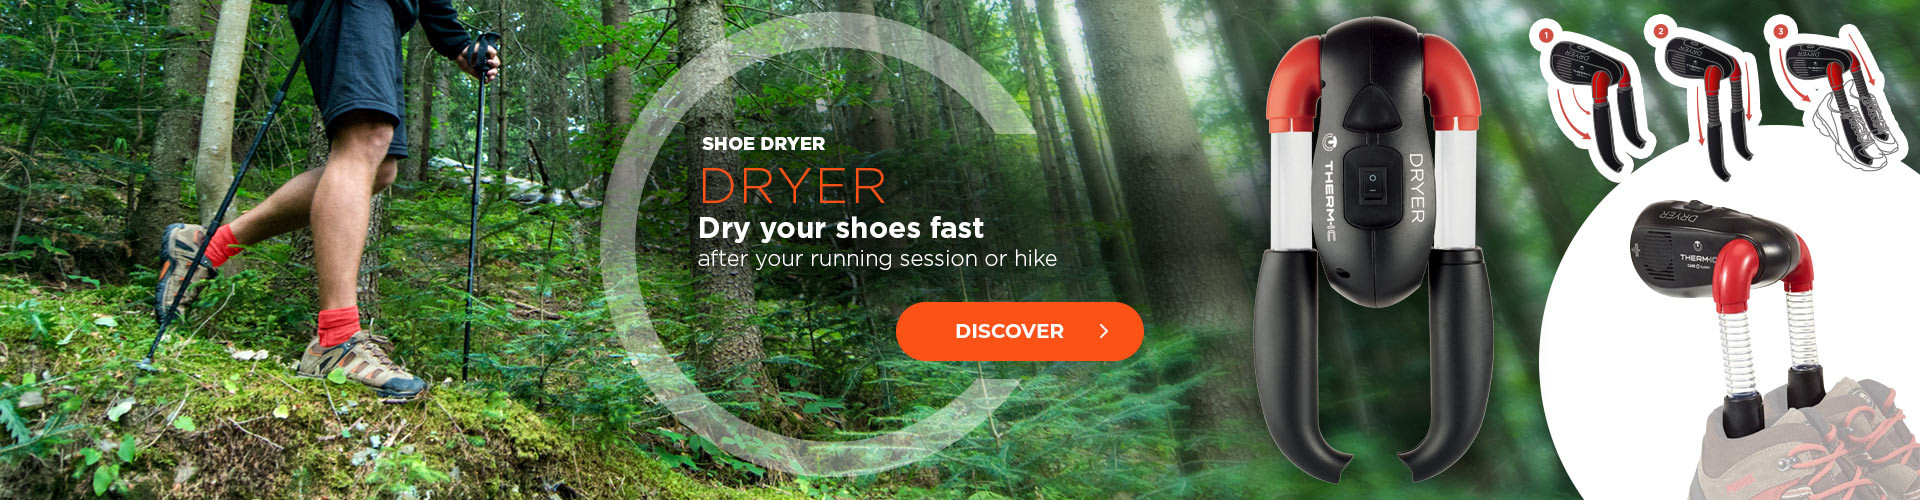 Dry your shoes quickly after your running session or your hike